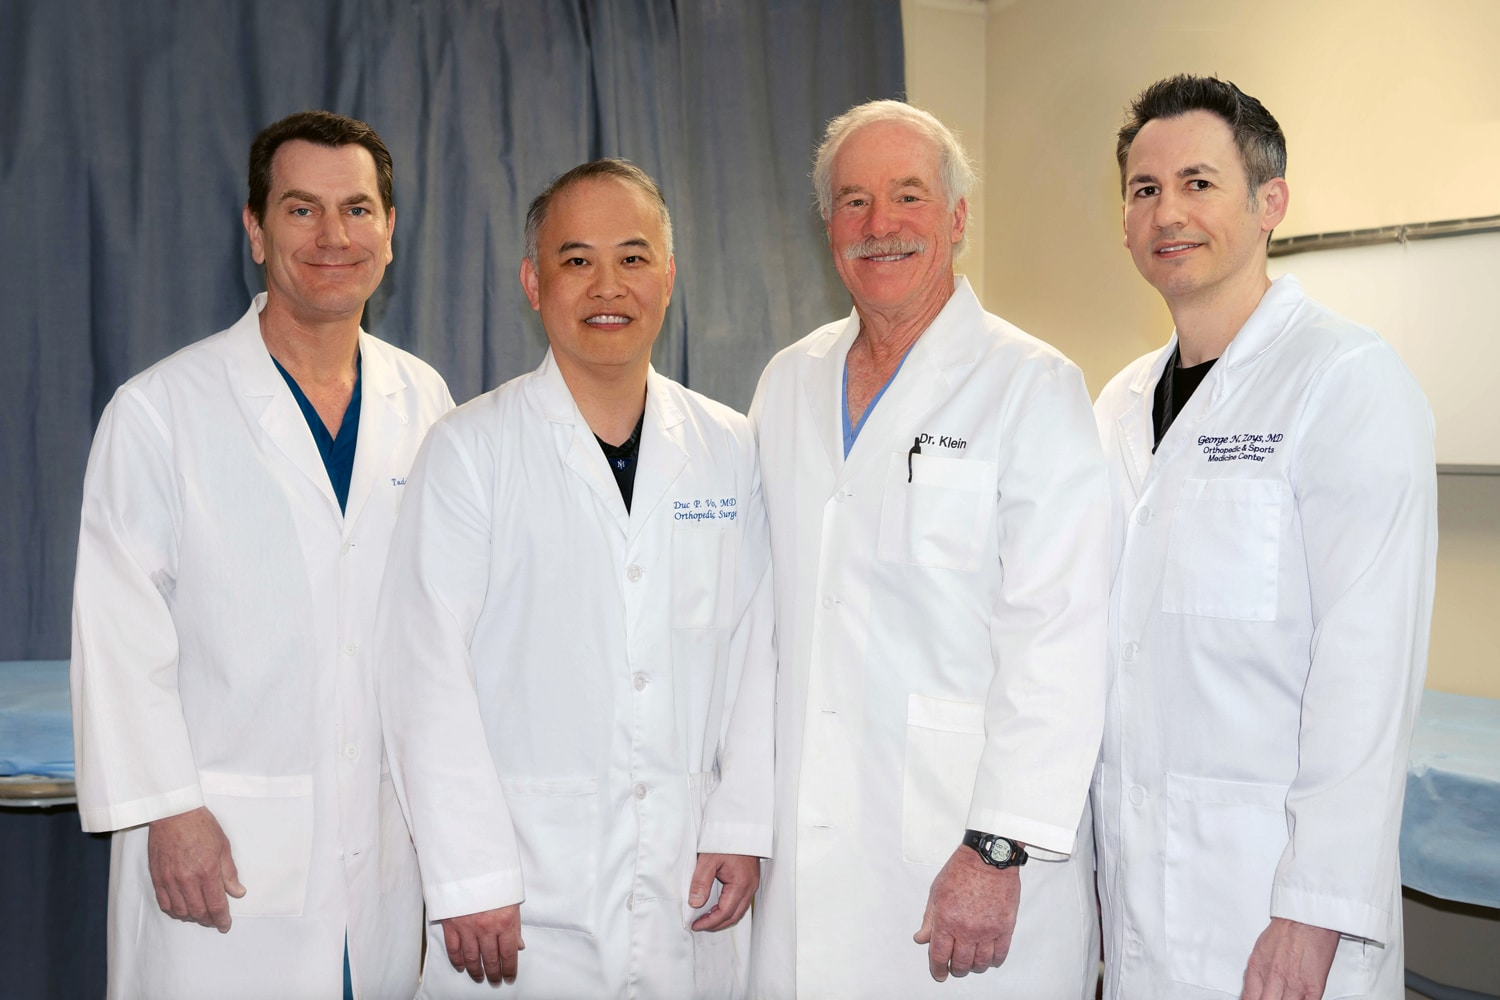 Orthopedic and Sports Medicine Center Todd Johnson, MD, FAAOS, Duc Vo, MD, FAAOS, Jeffrey Klein, MD, FAAOS, George Zoys, MD, FAAOS